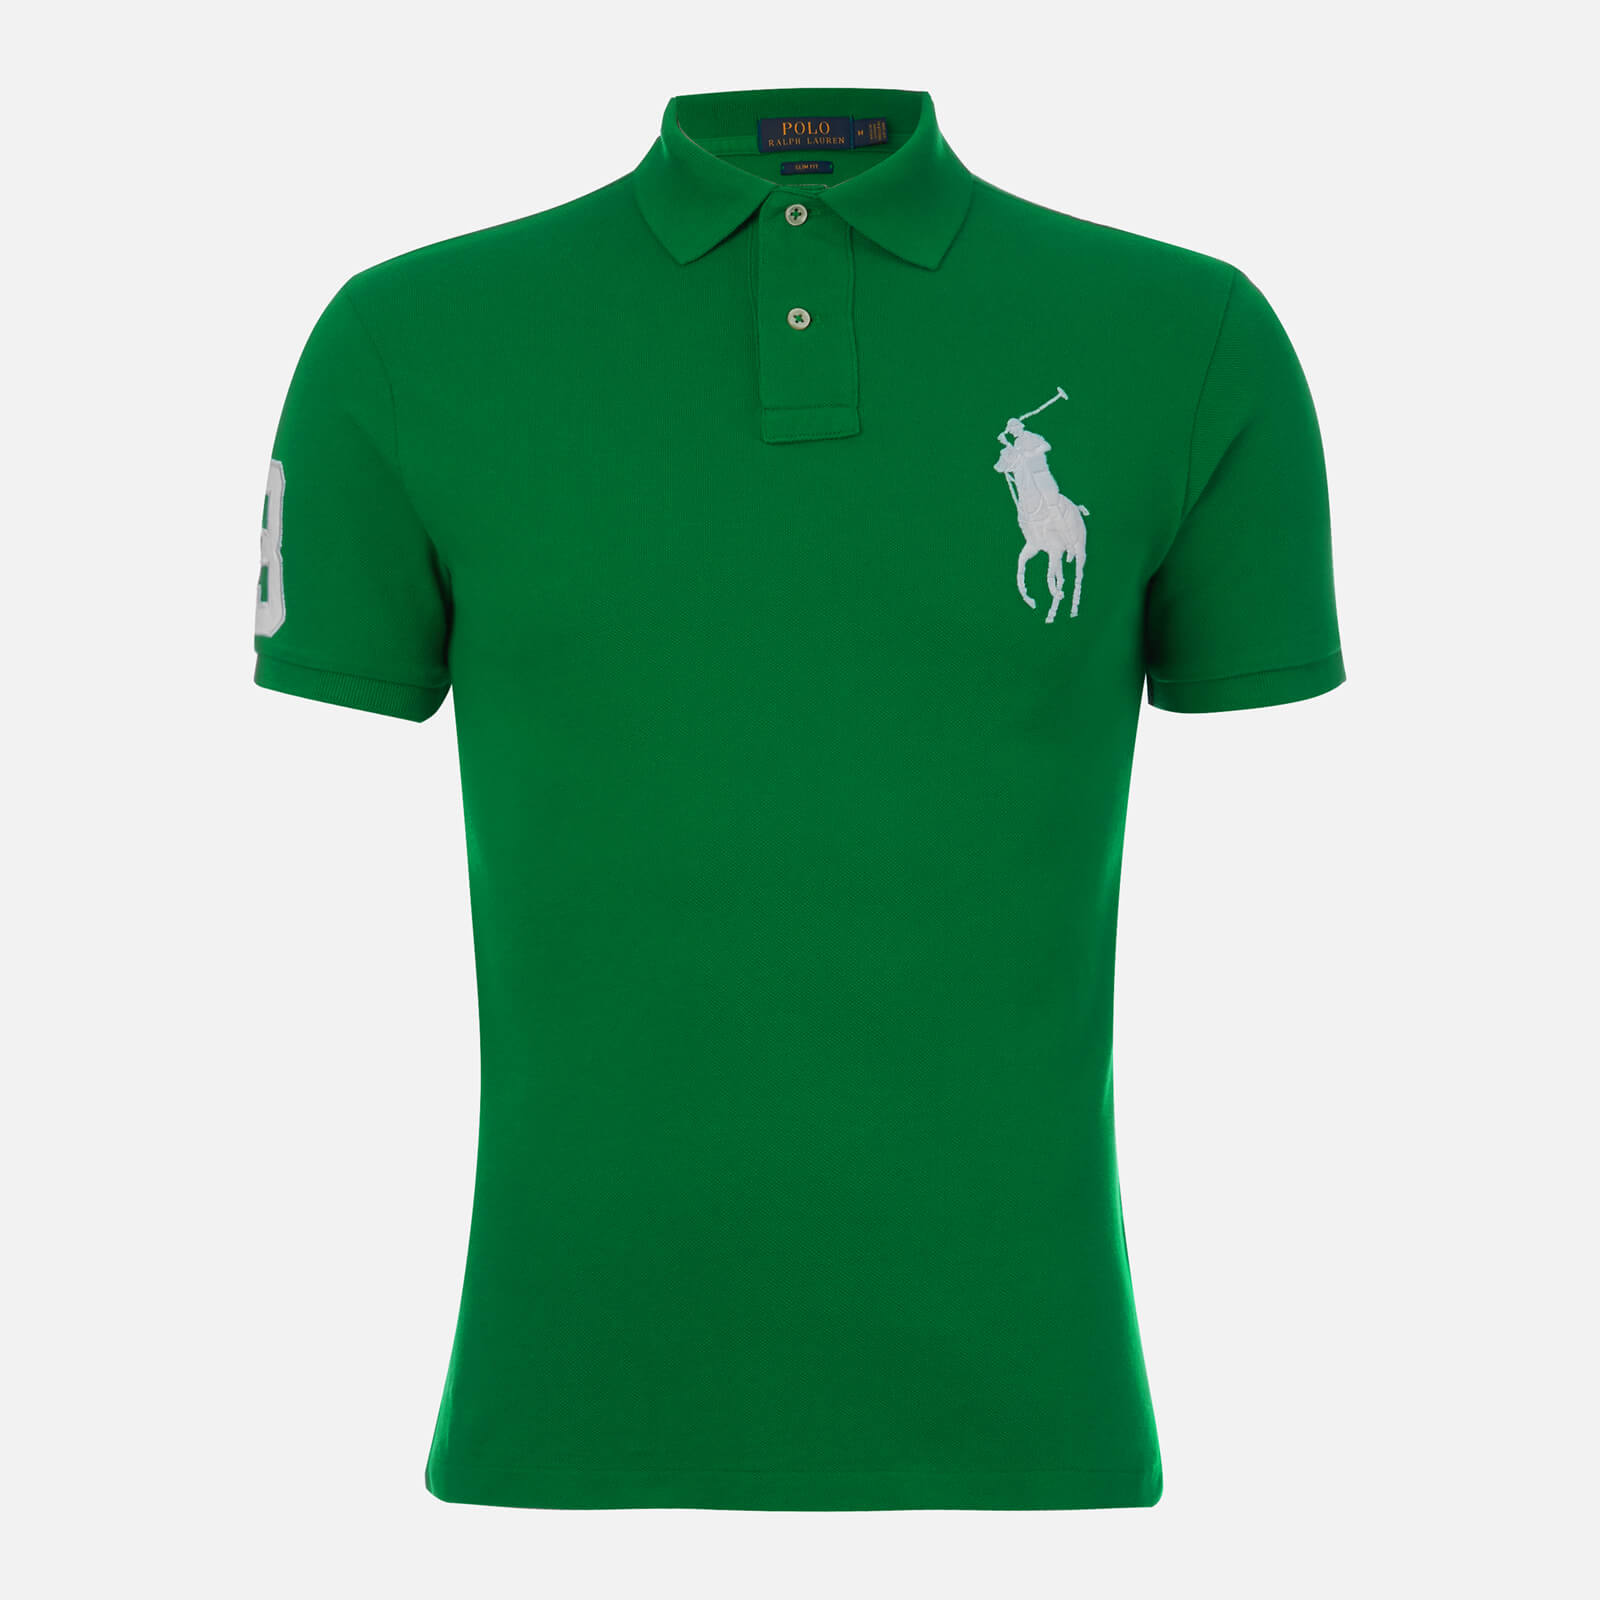 36d1f9c8bb785 Polo Ralph Lauren Men s Slim Fit Basic Mesh Polo Shirt - Green White ...